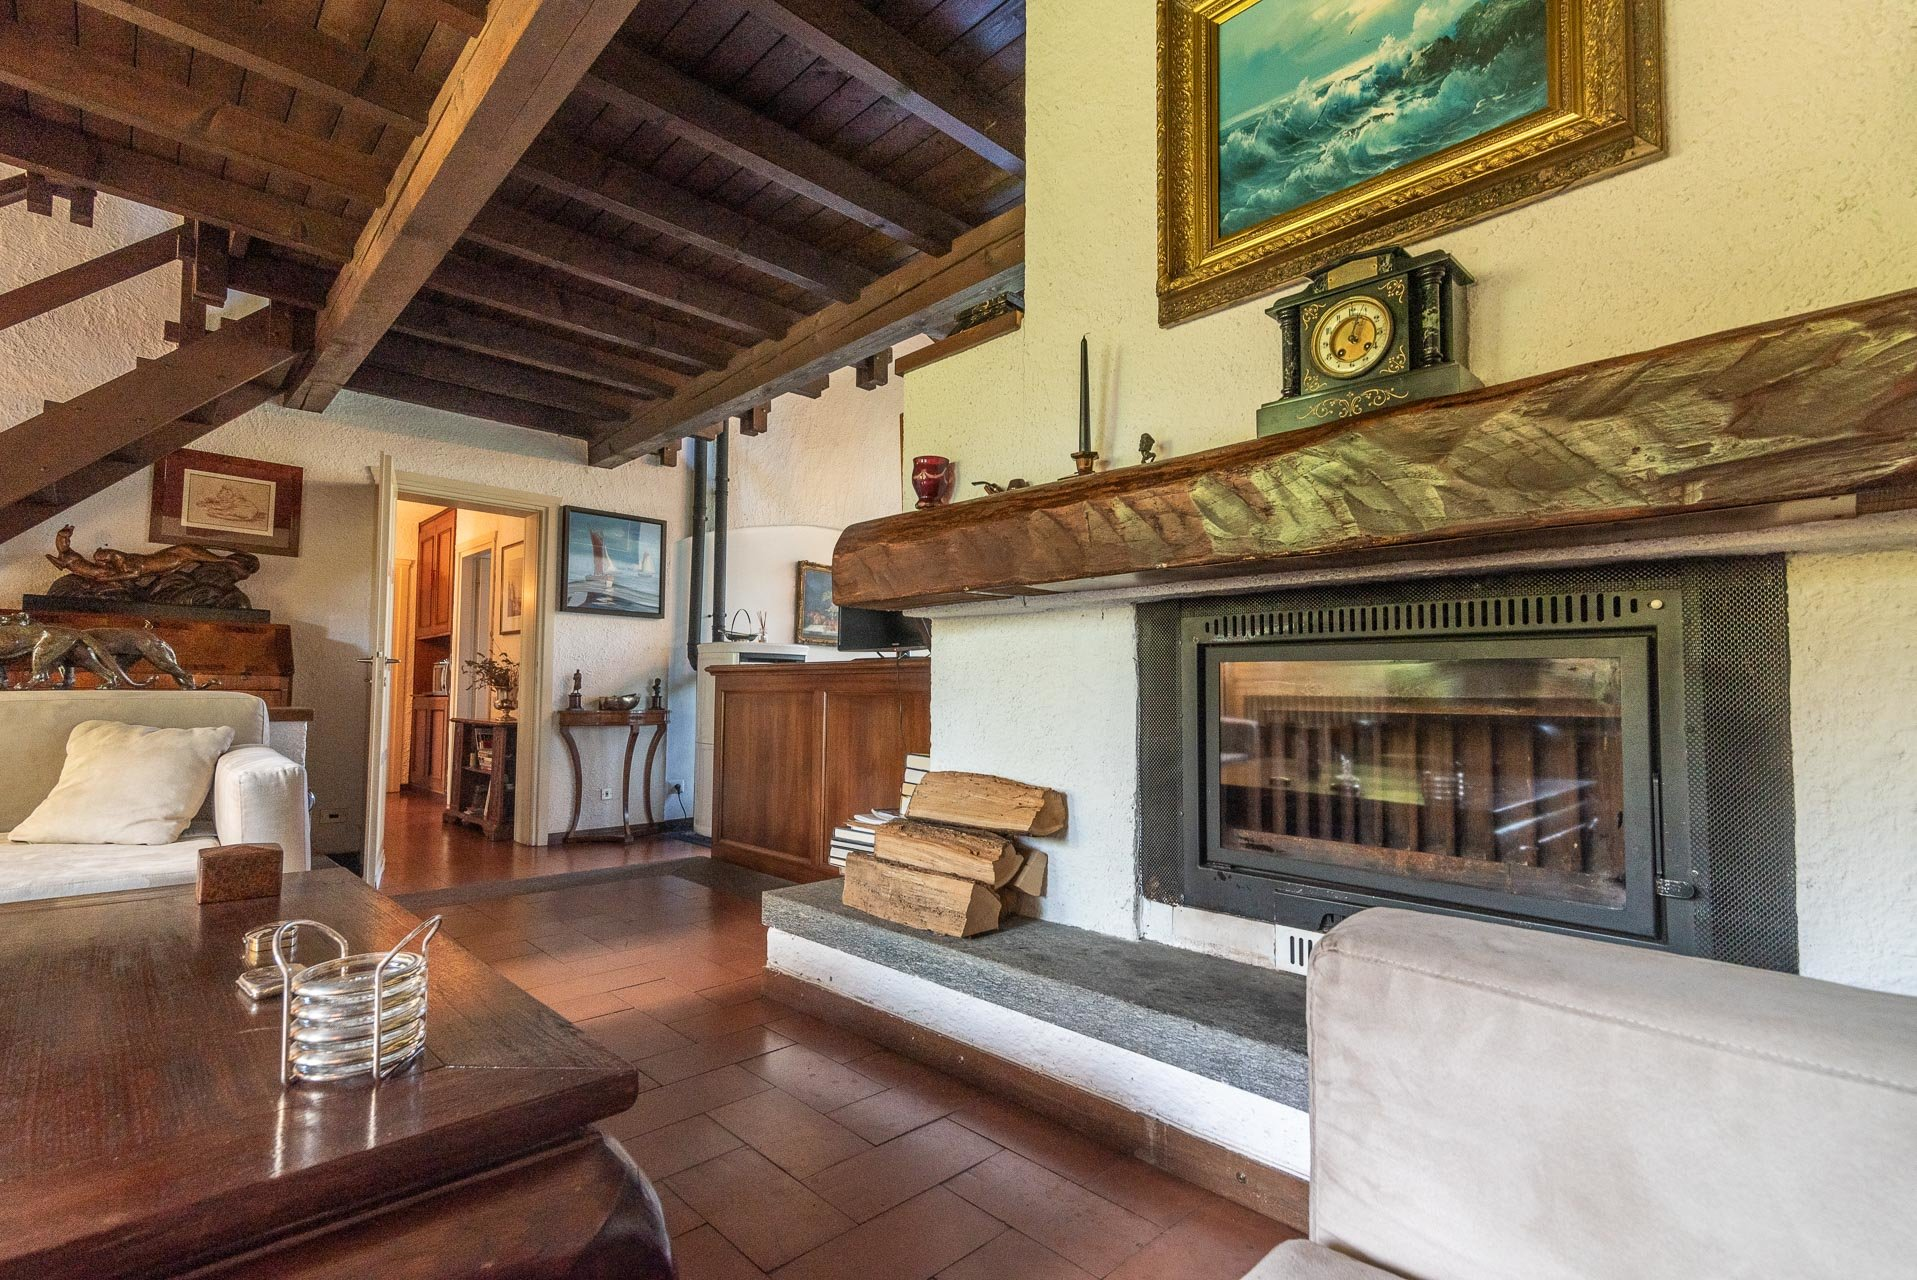 Villa with swimming pool for sale in Gignese - living room with fireplace